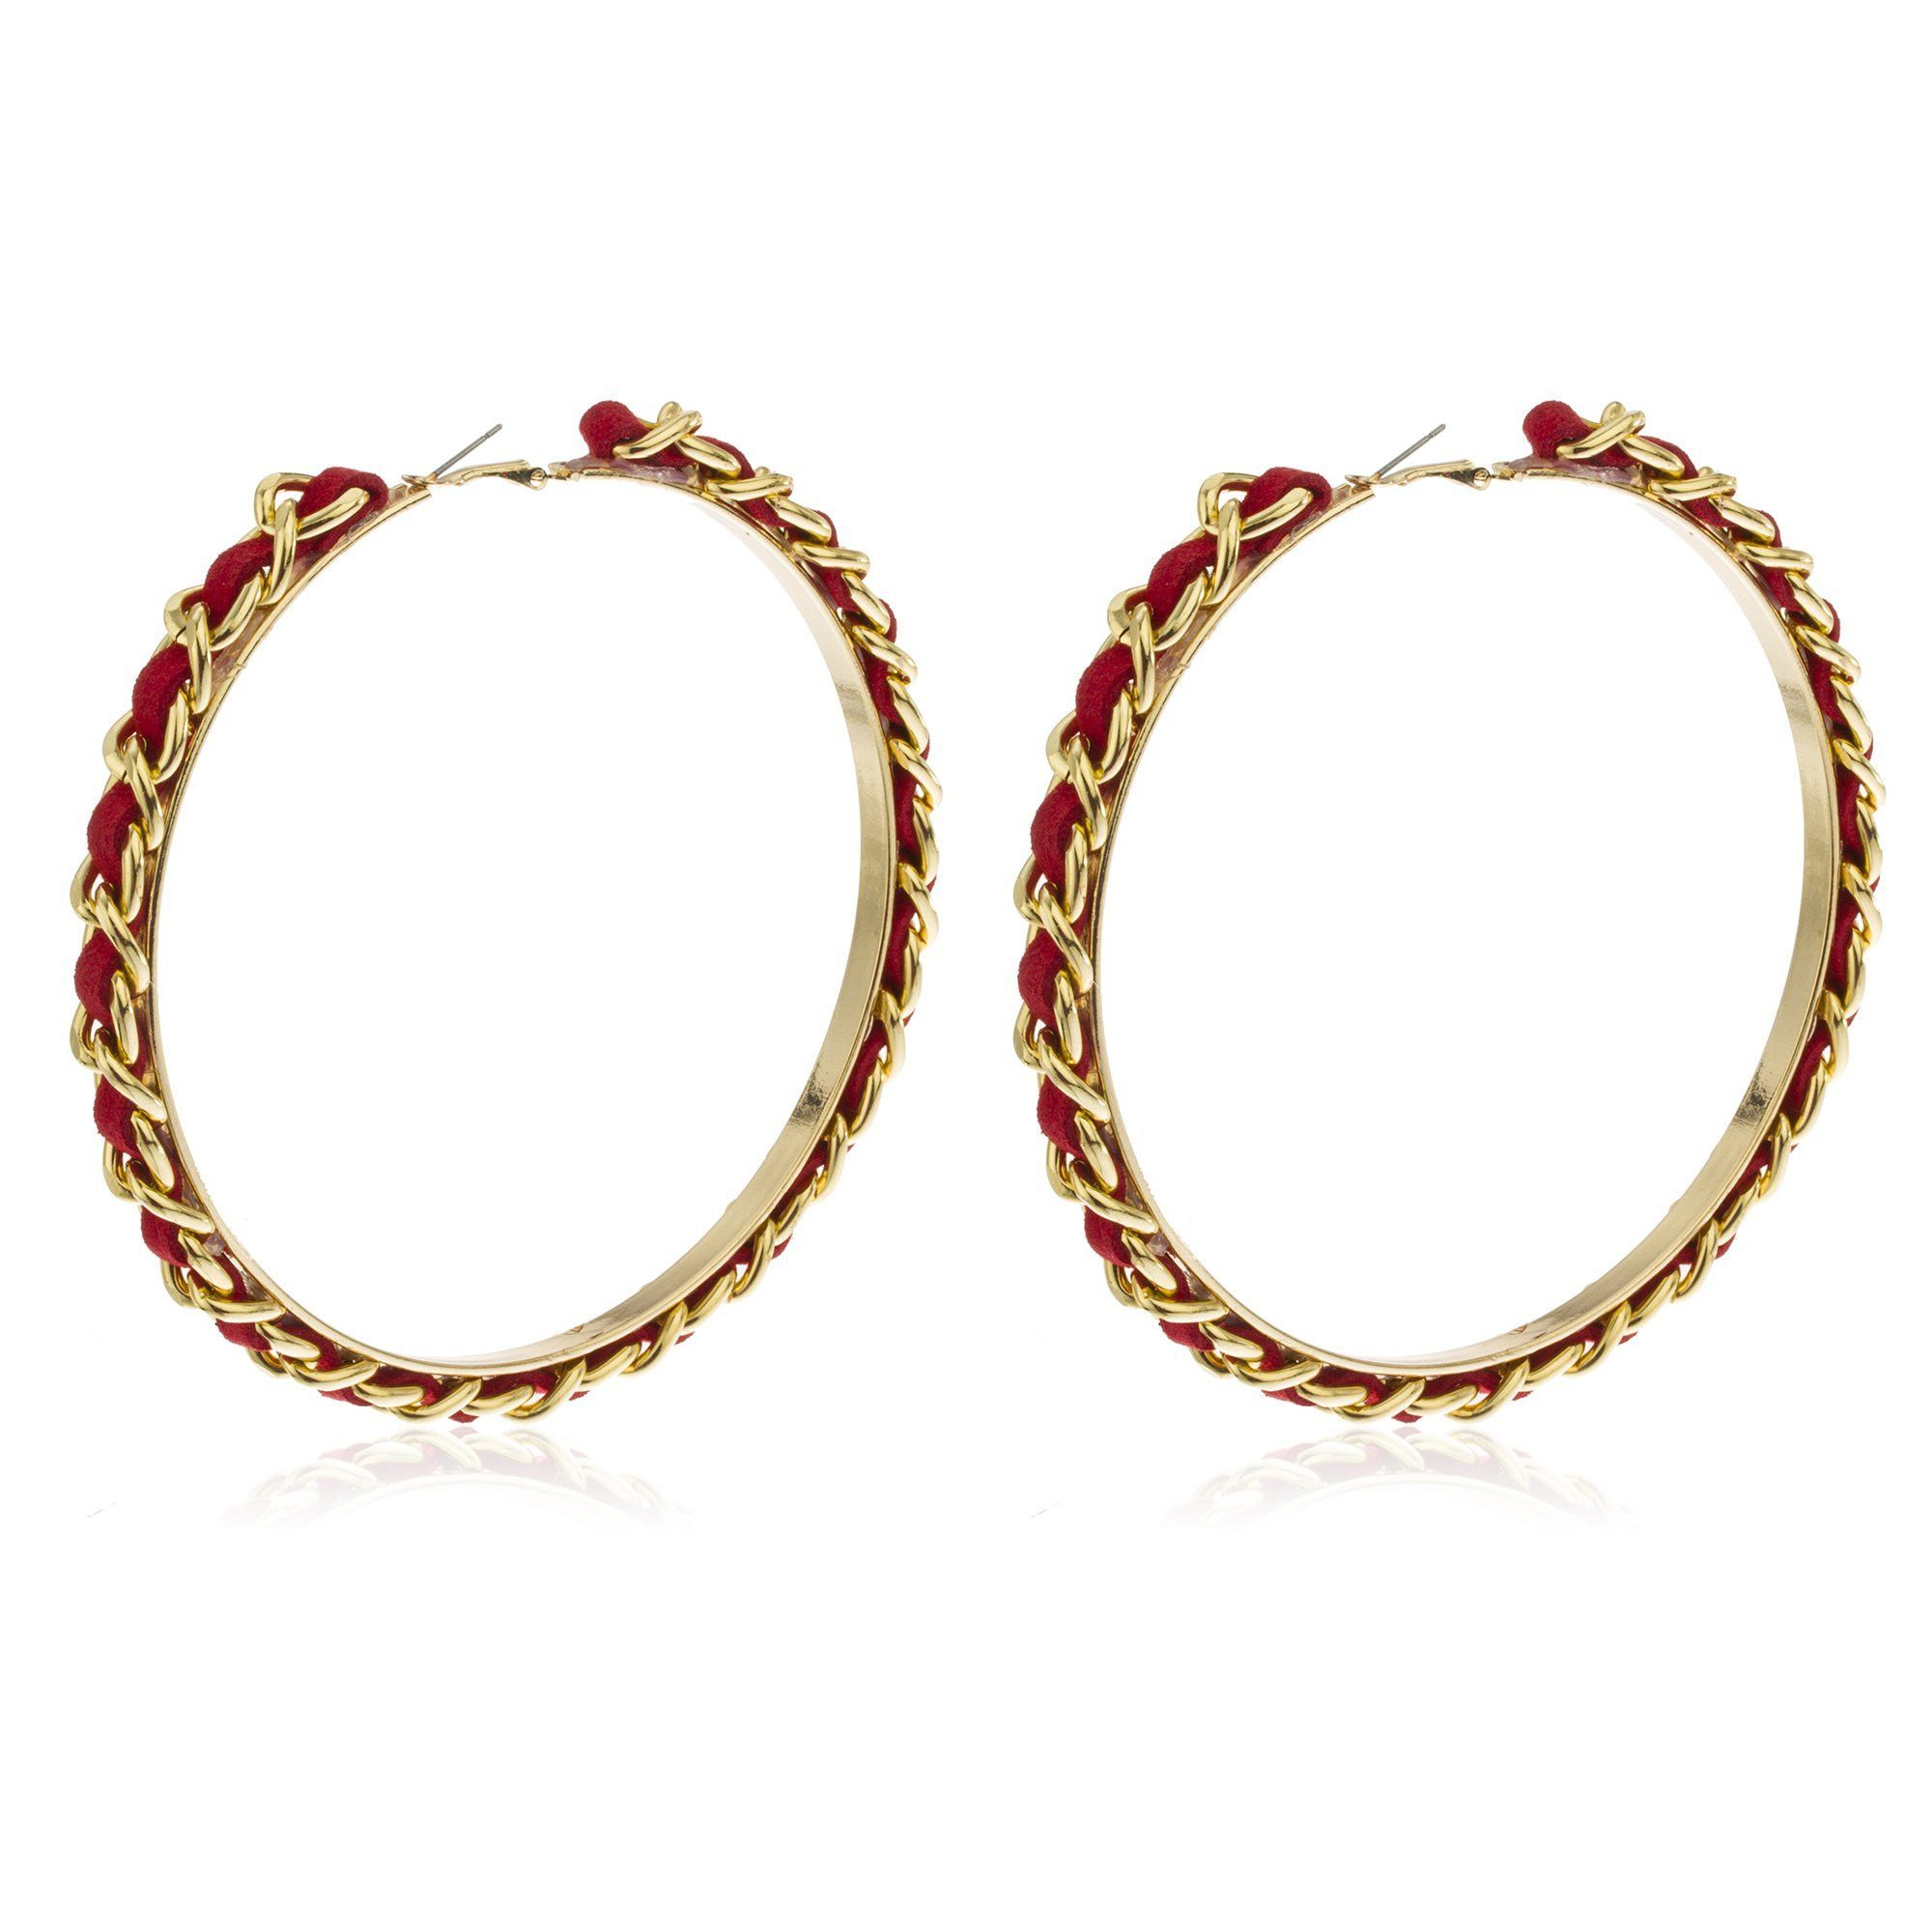 Large Goldtone 4 5 Inch Cuban Link Hoops With Red Braided Fabric Earrings